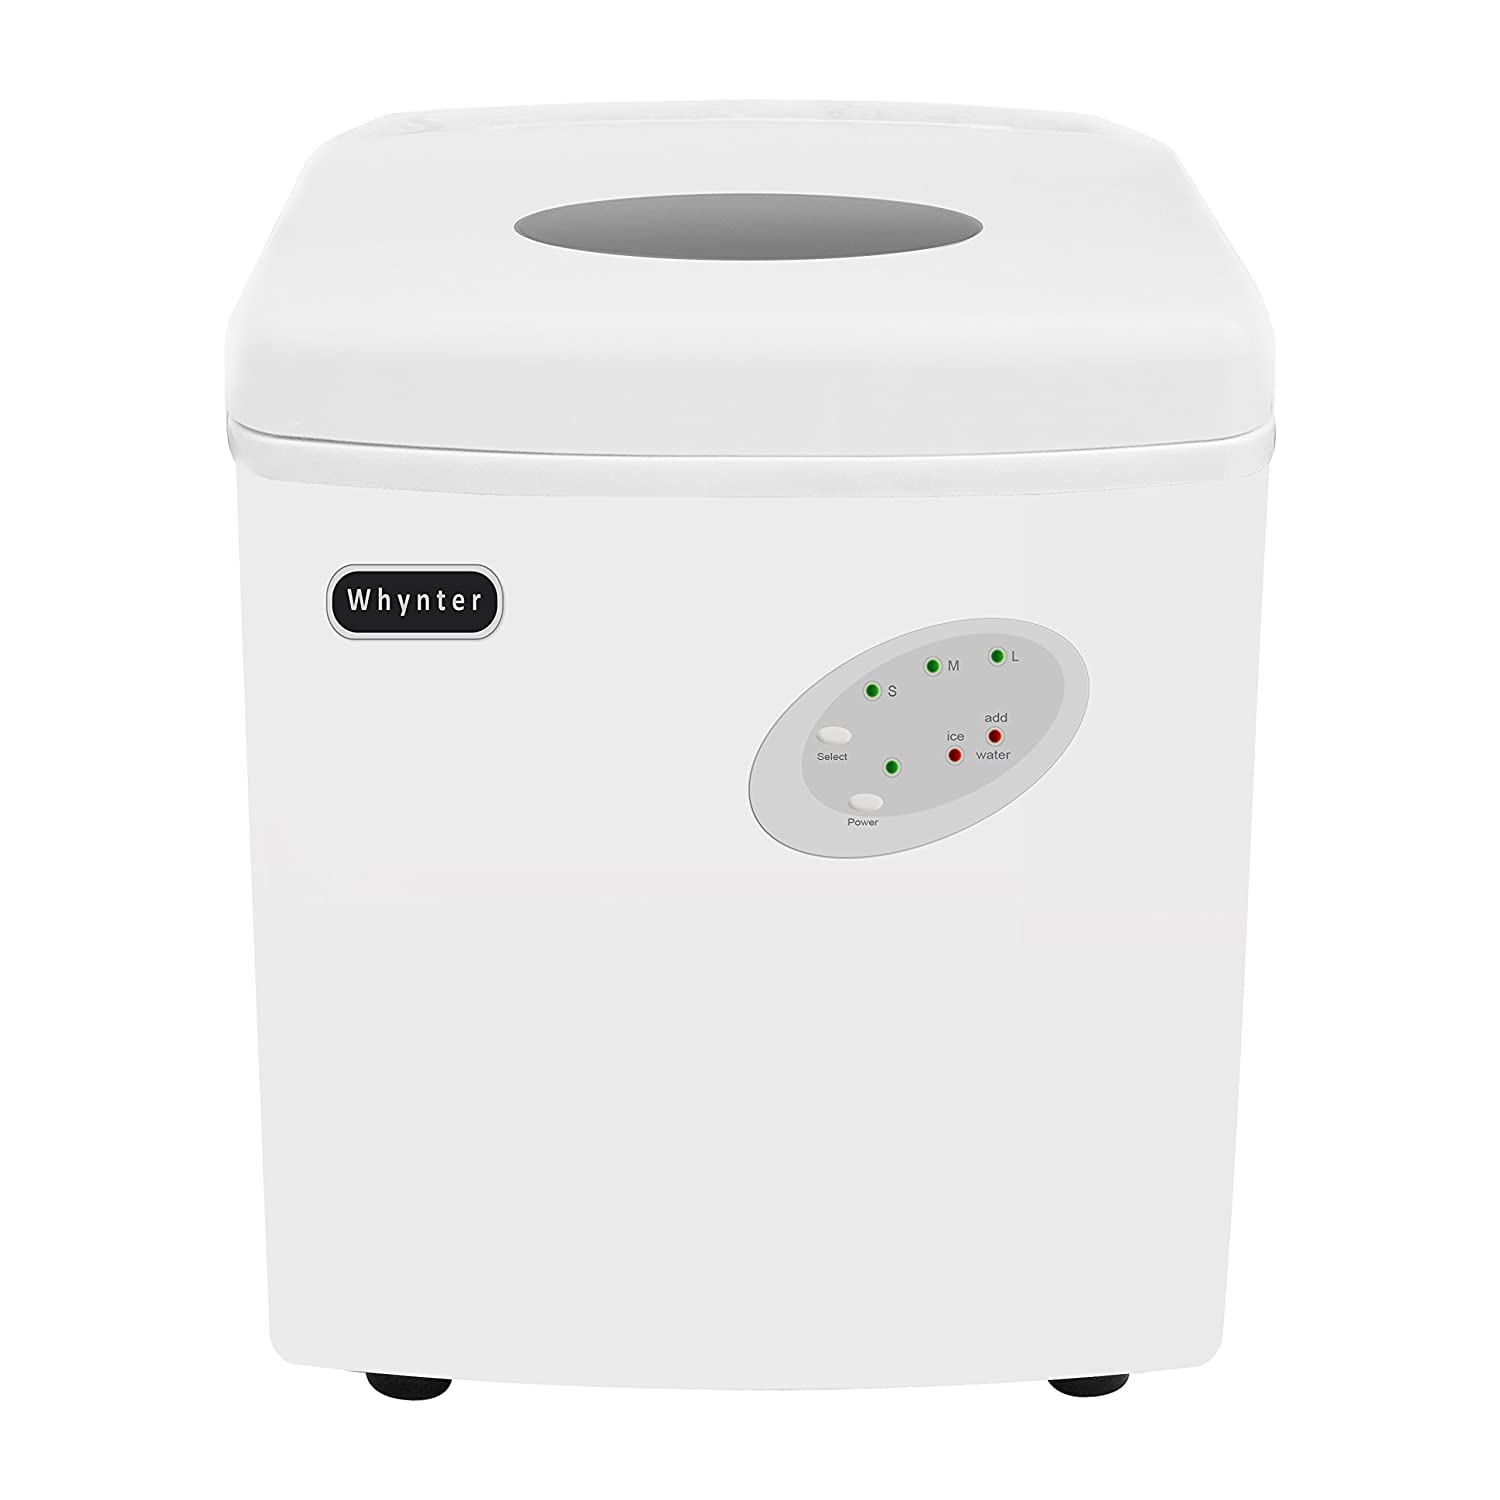 Whynter IMC-330WS Portable 33 lb Capacity-White Ice Makers, One Size,